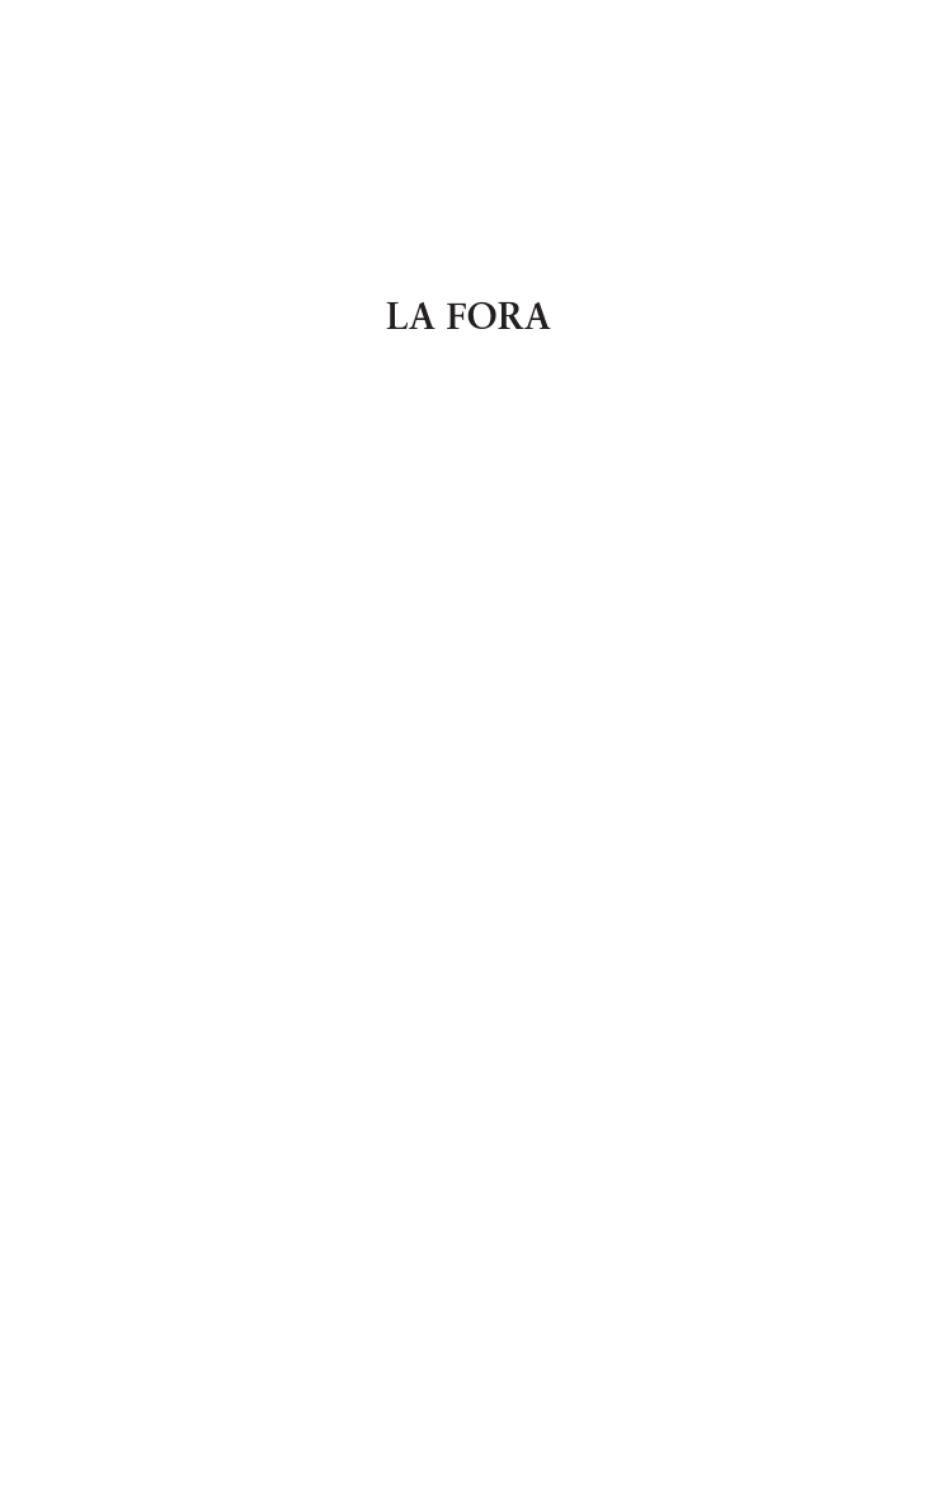 download el libro de los cantares de